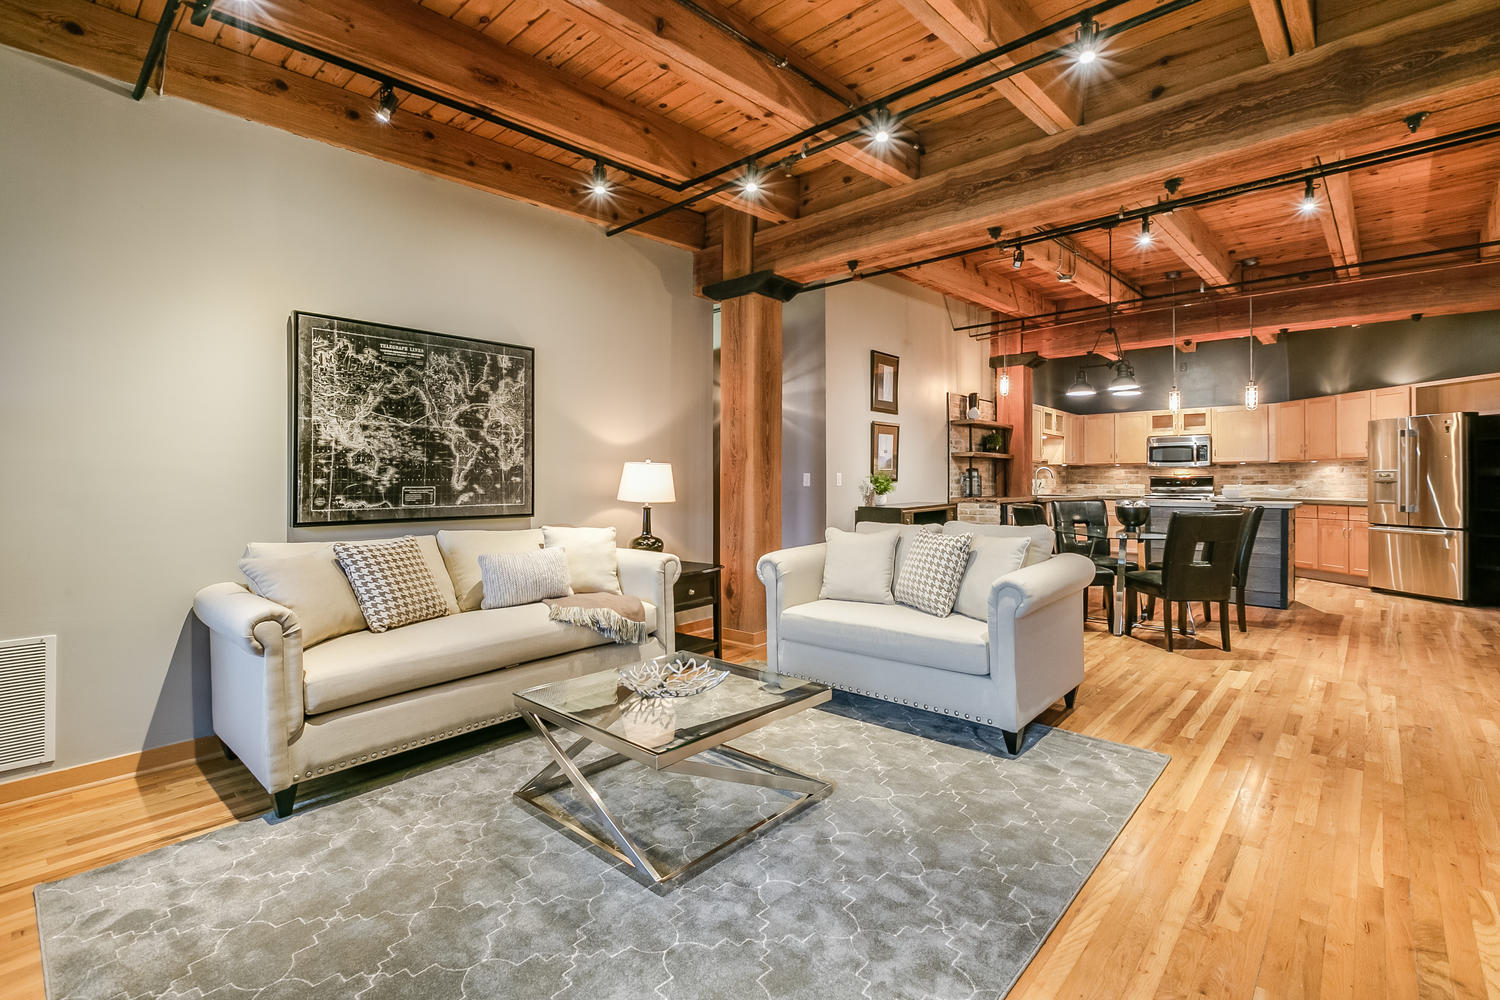 413 N. 2nd St. - Unit 390. Photo from Corley Real Estate.